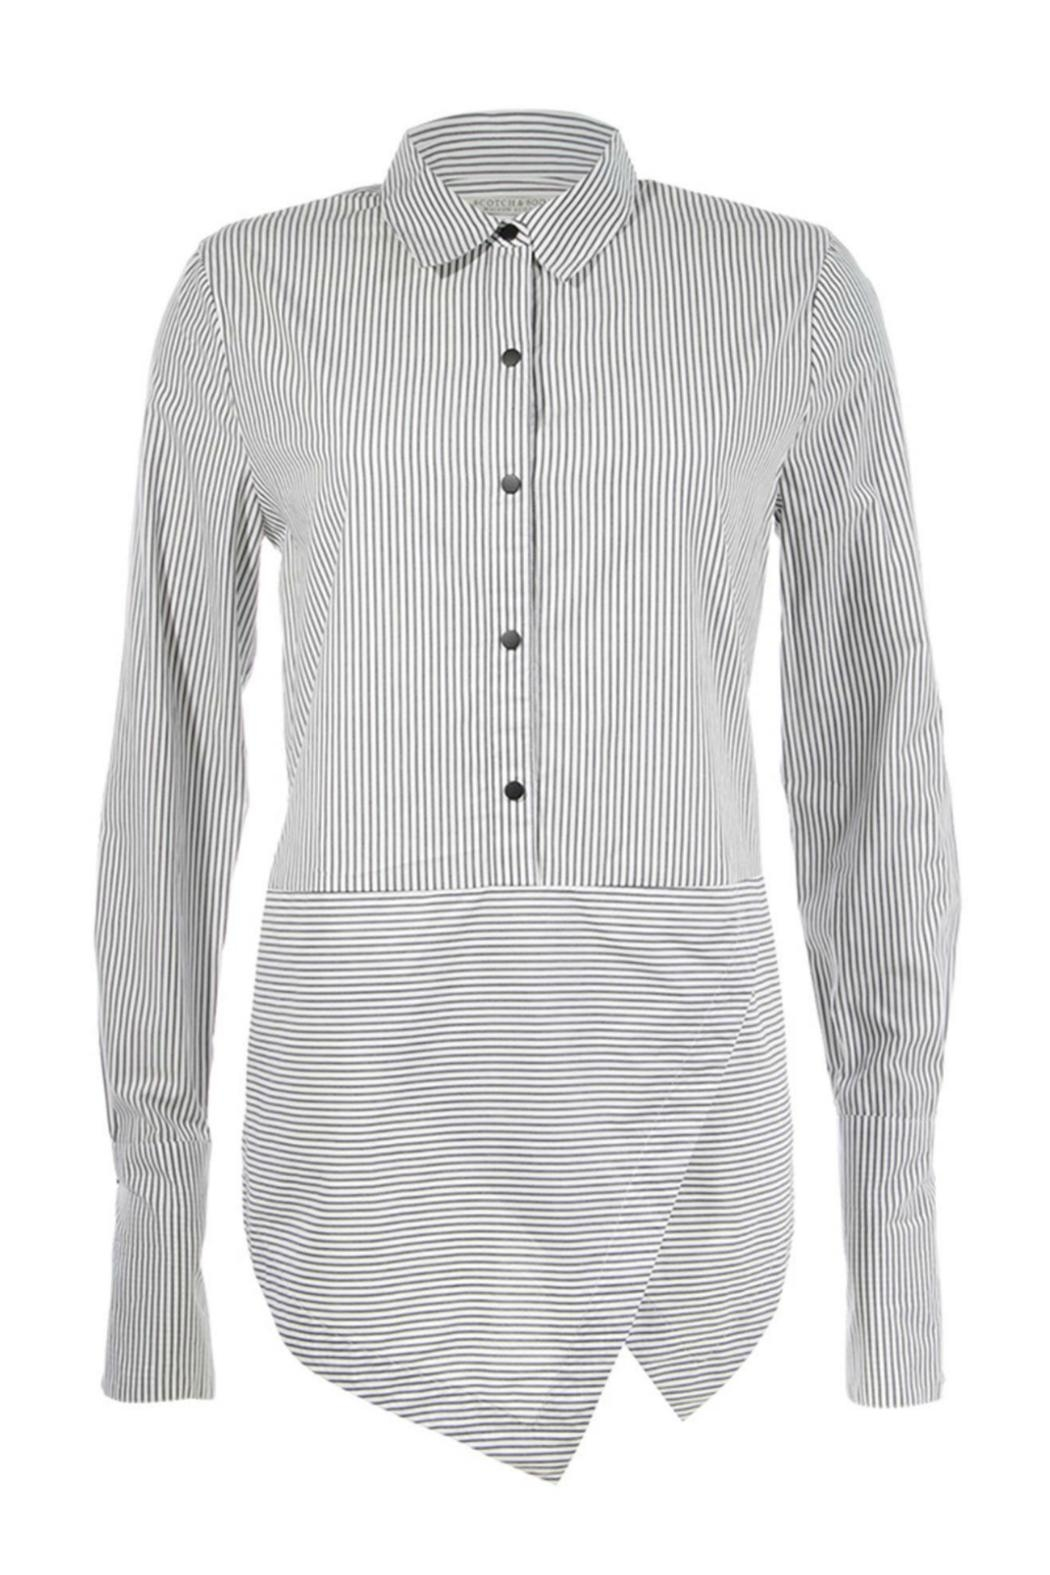 Maison Scotch Angled Hem Shirt - Main Image